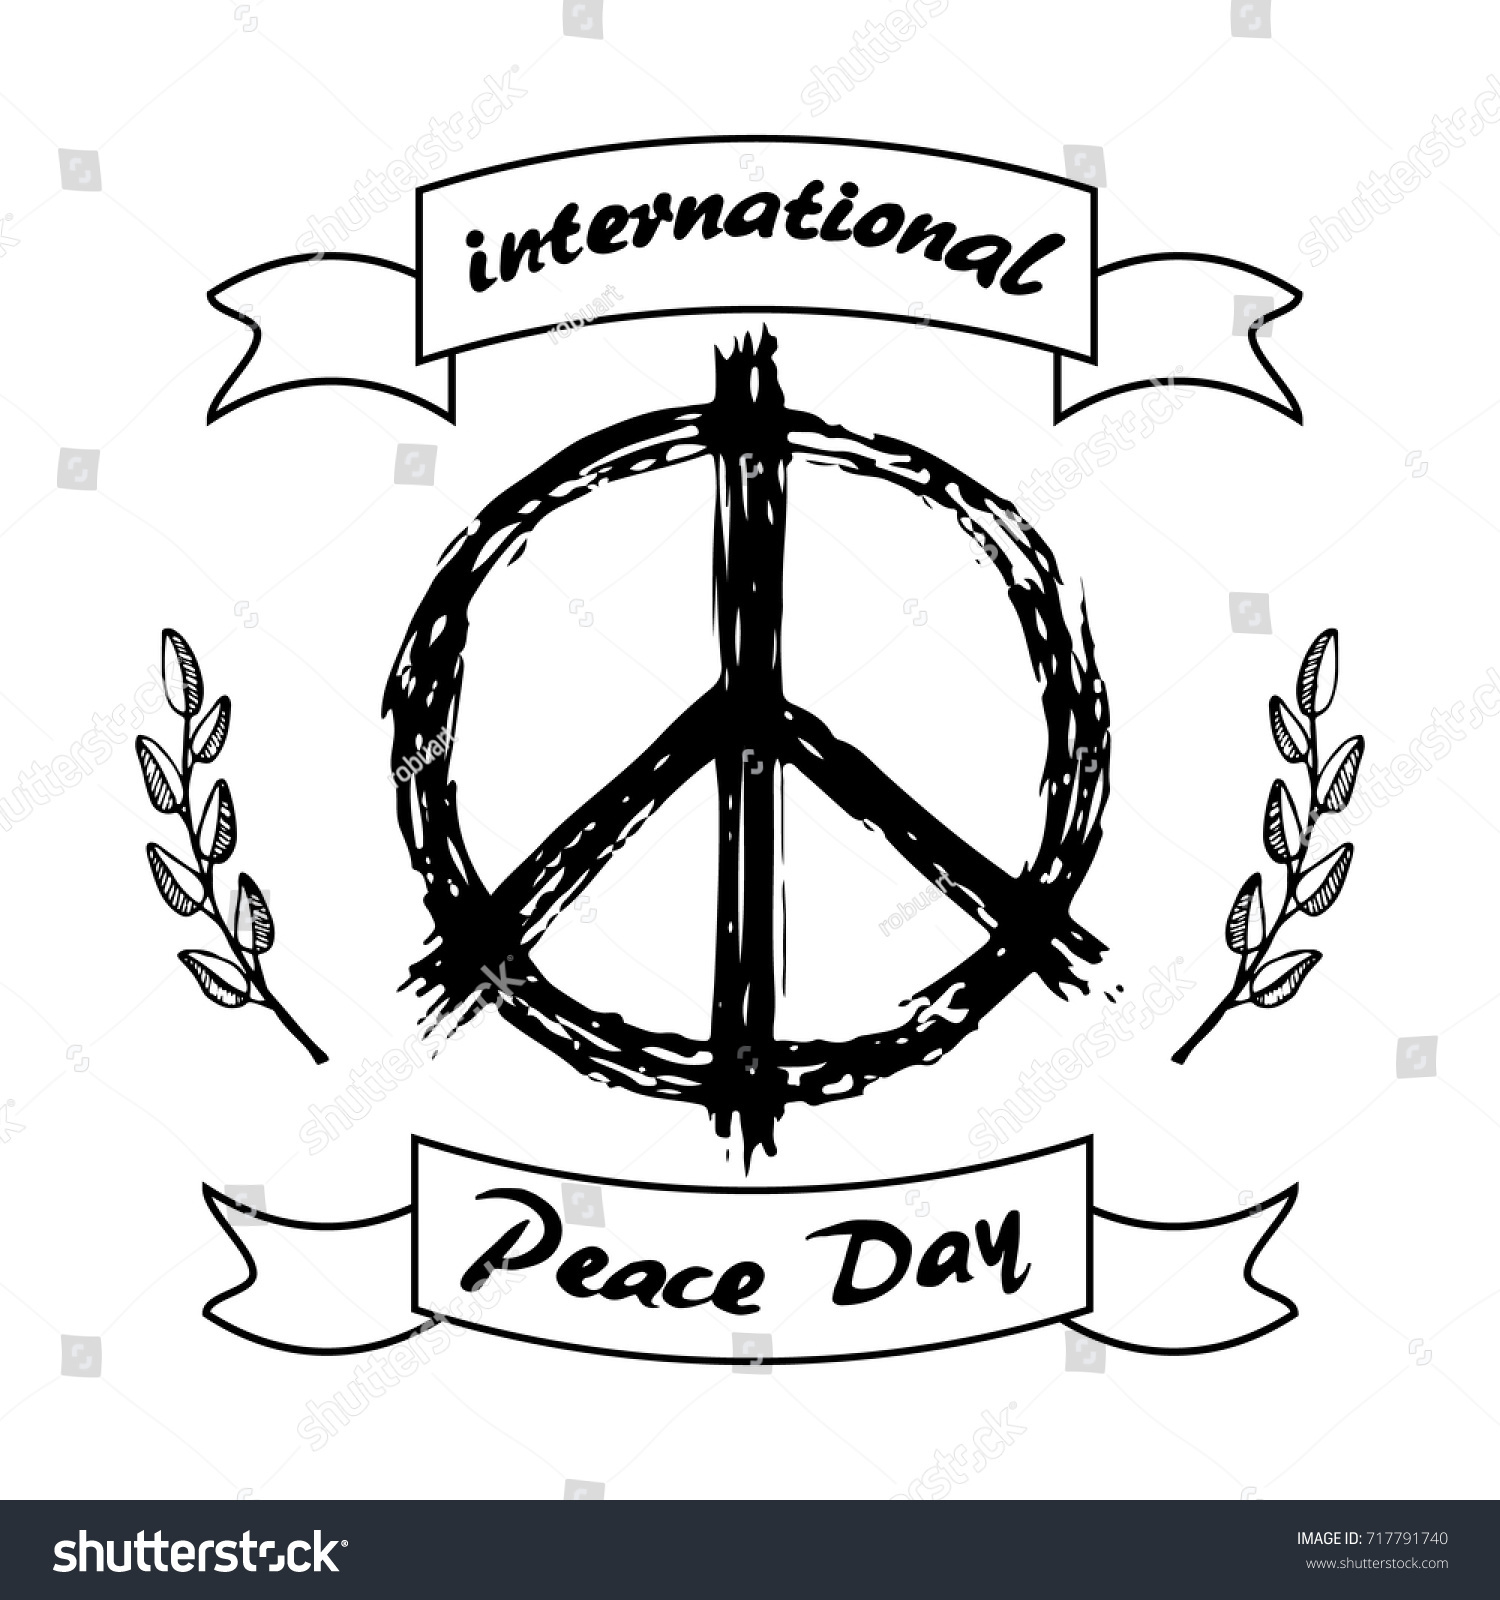 International peace day logo hippie sign stock vector 717791740 international peace day logo with hippie sign in black and white colors and olive branch symbols biocorpaavc Images